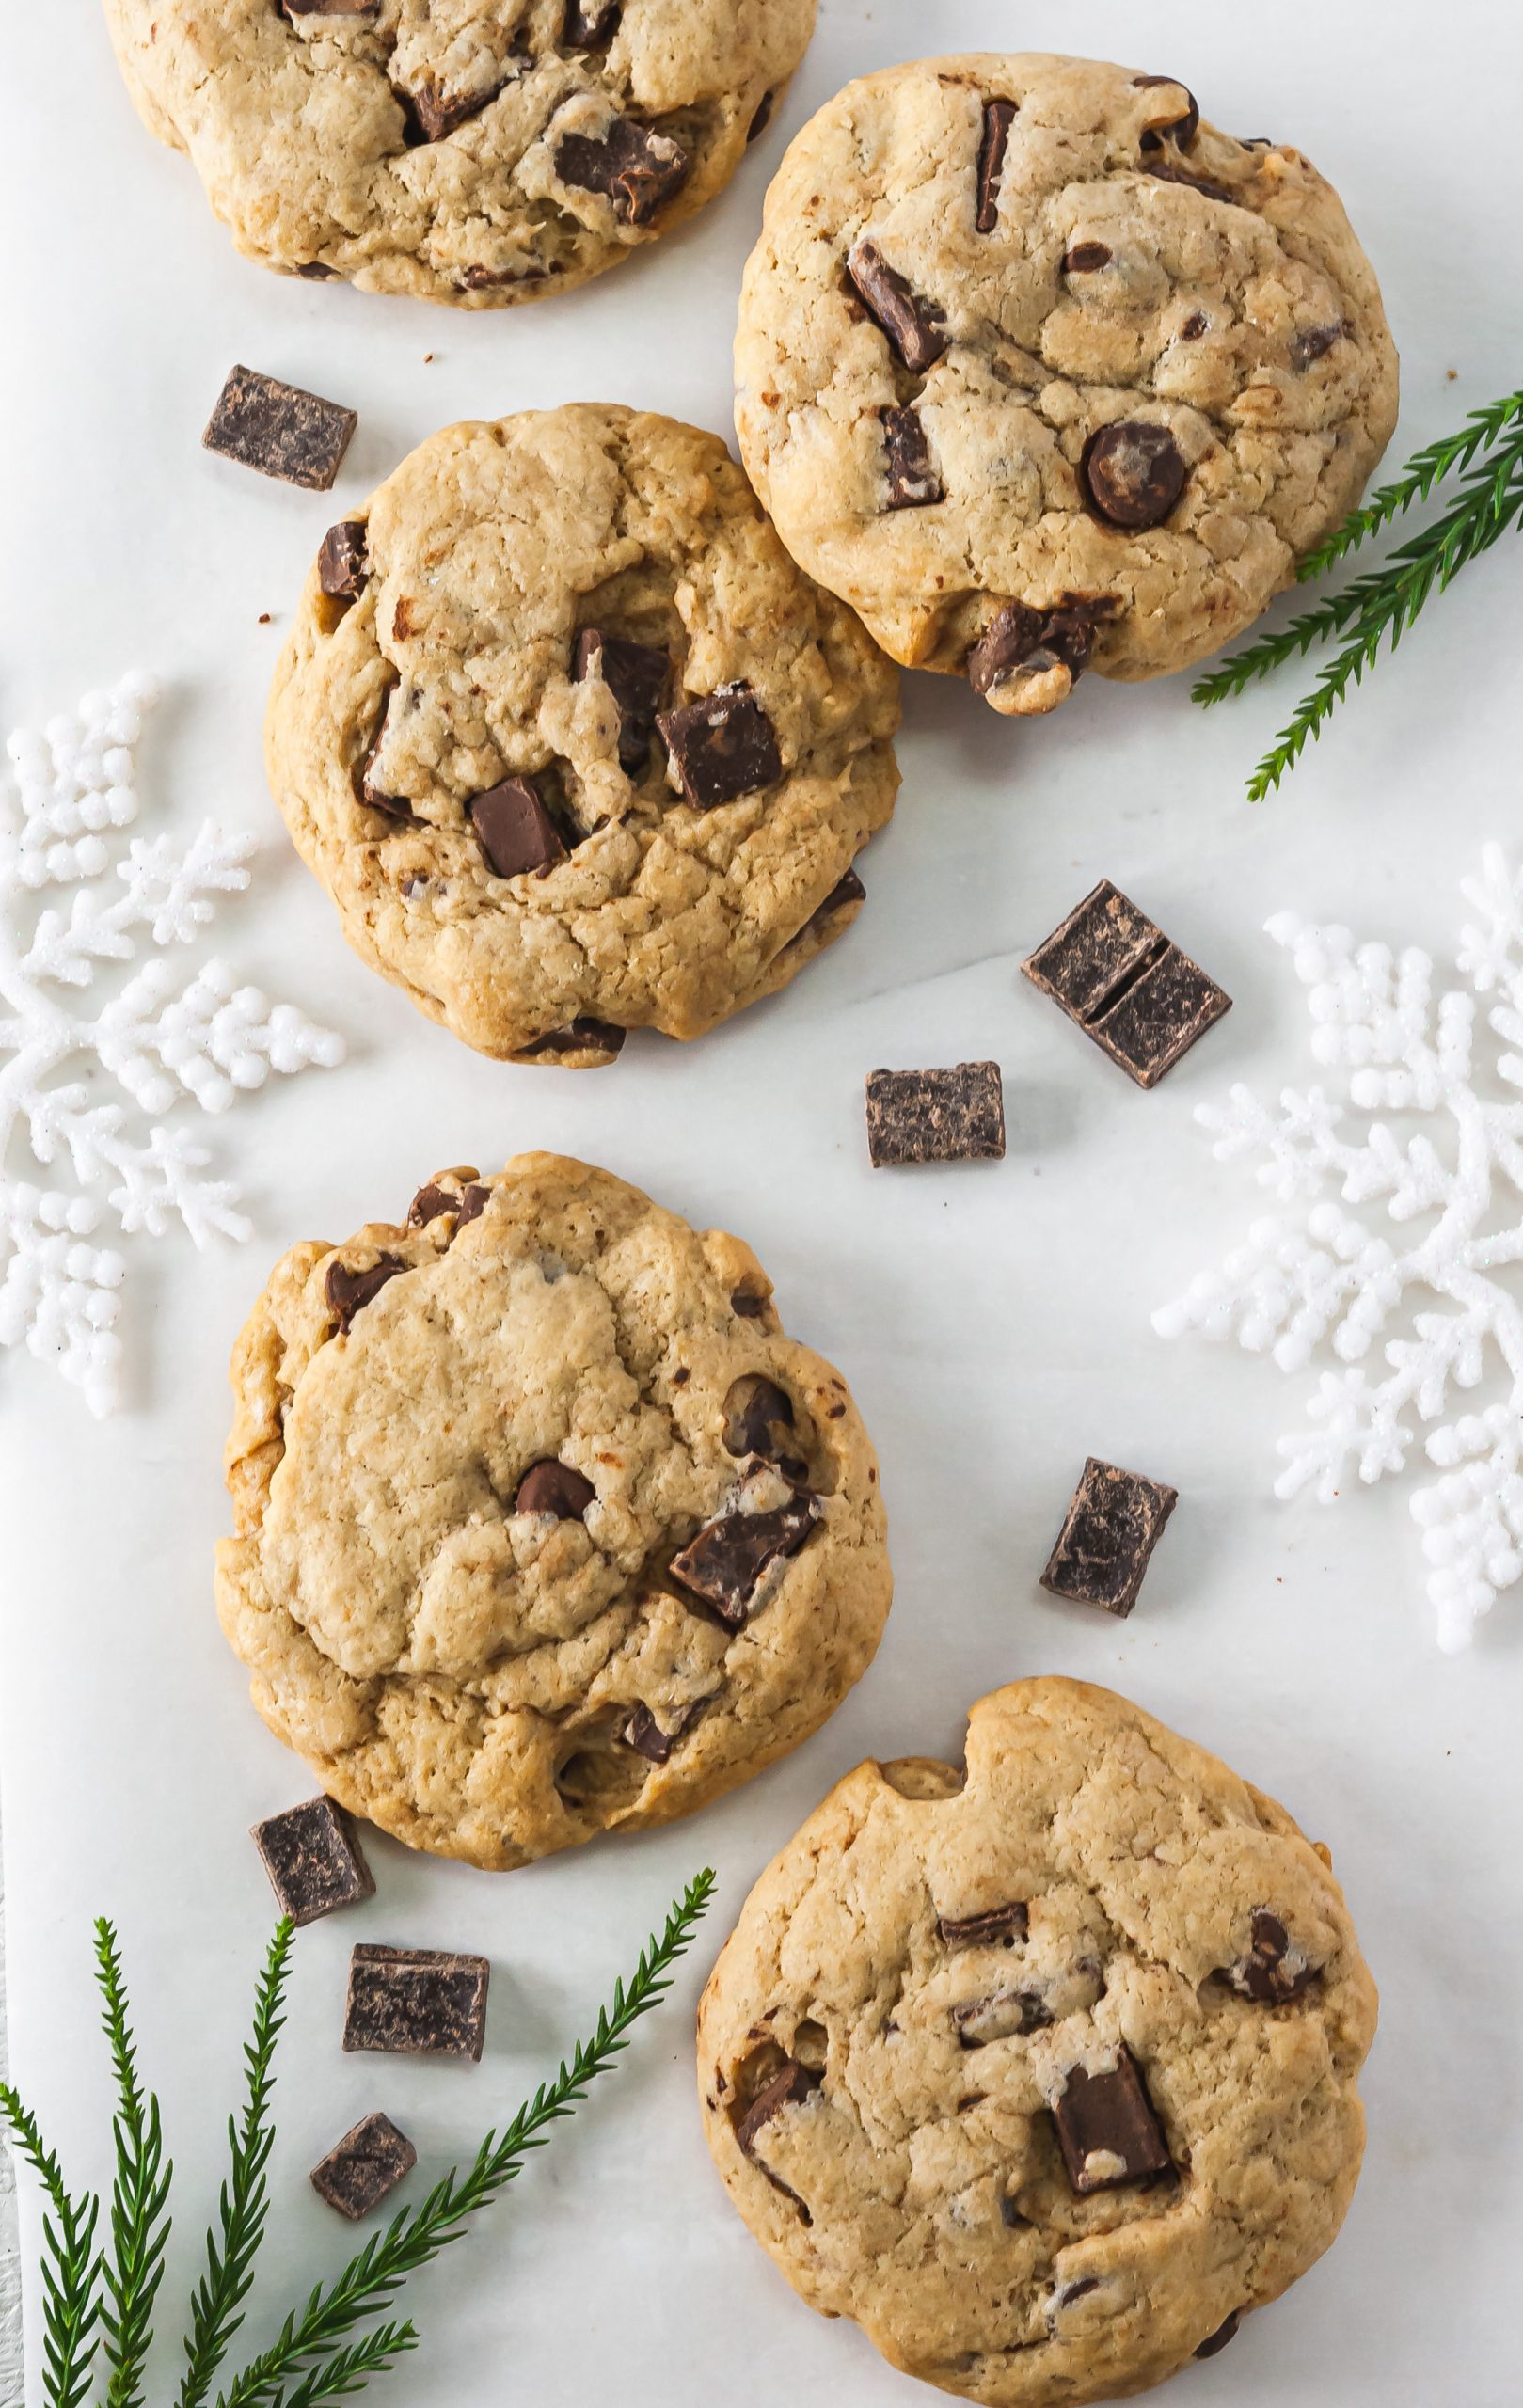 Food photo of chocolate chip cookies with snowflakes